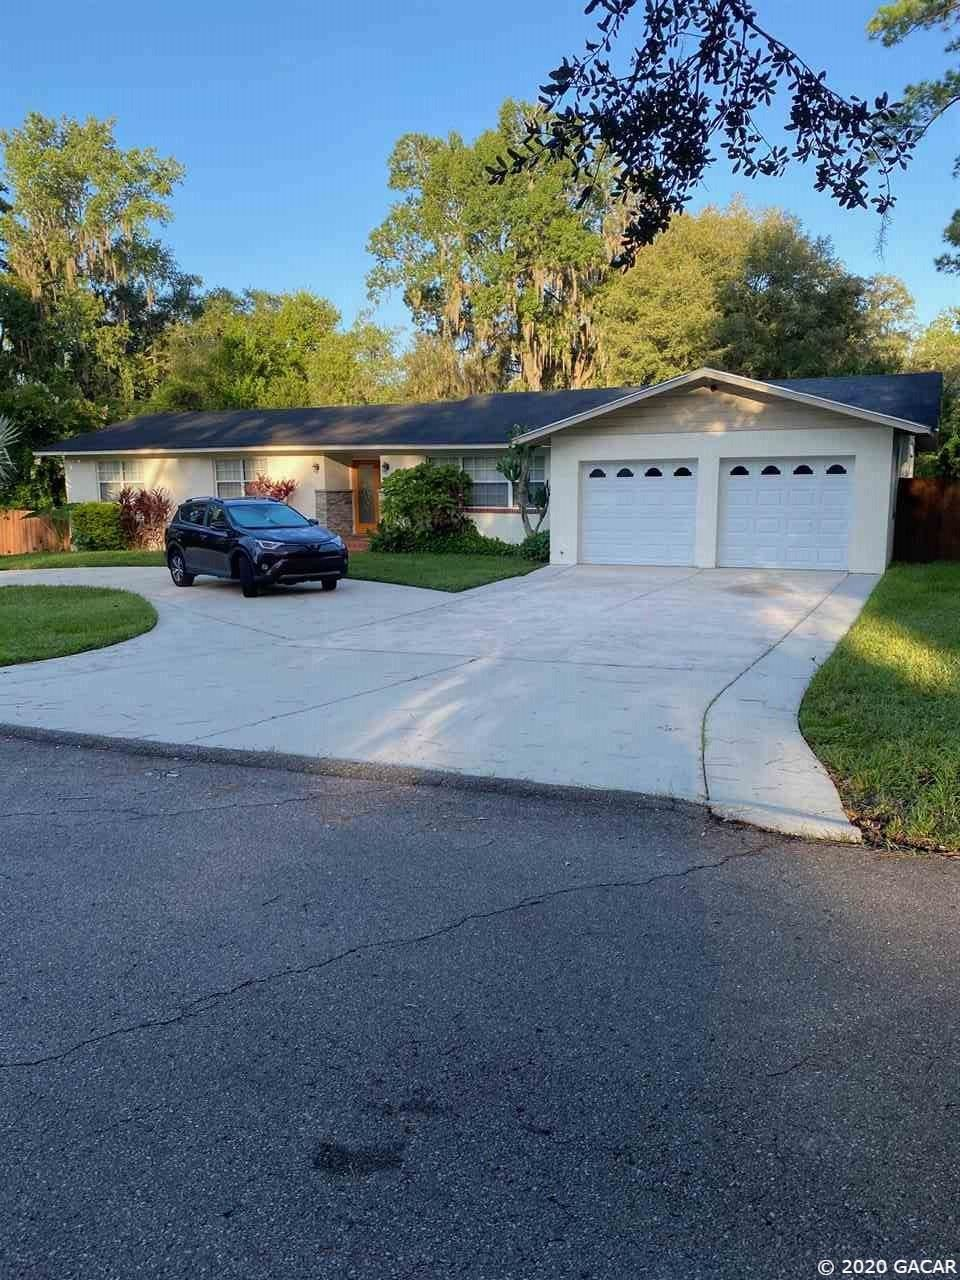 910 NW 37th Terrace, Gainesville, FL 32605 - #: 436128